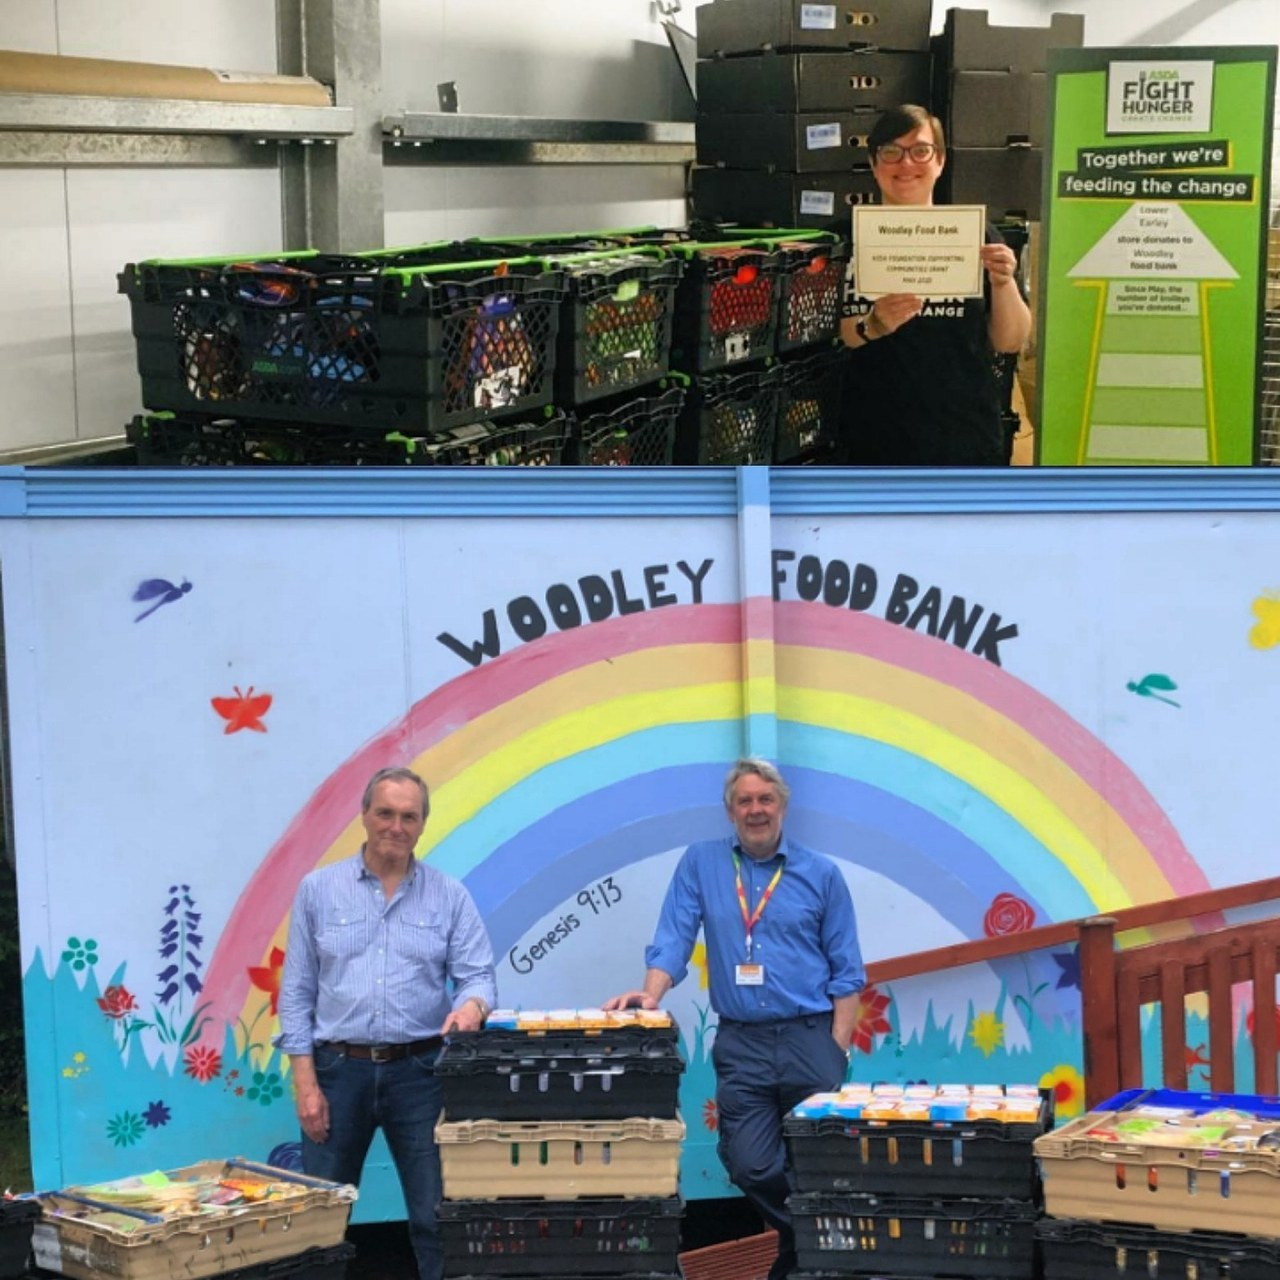 Grant for Woodley Food Bank | Asda Lower Earley